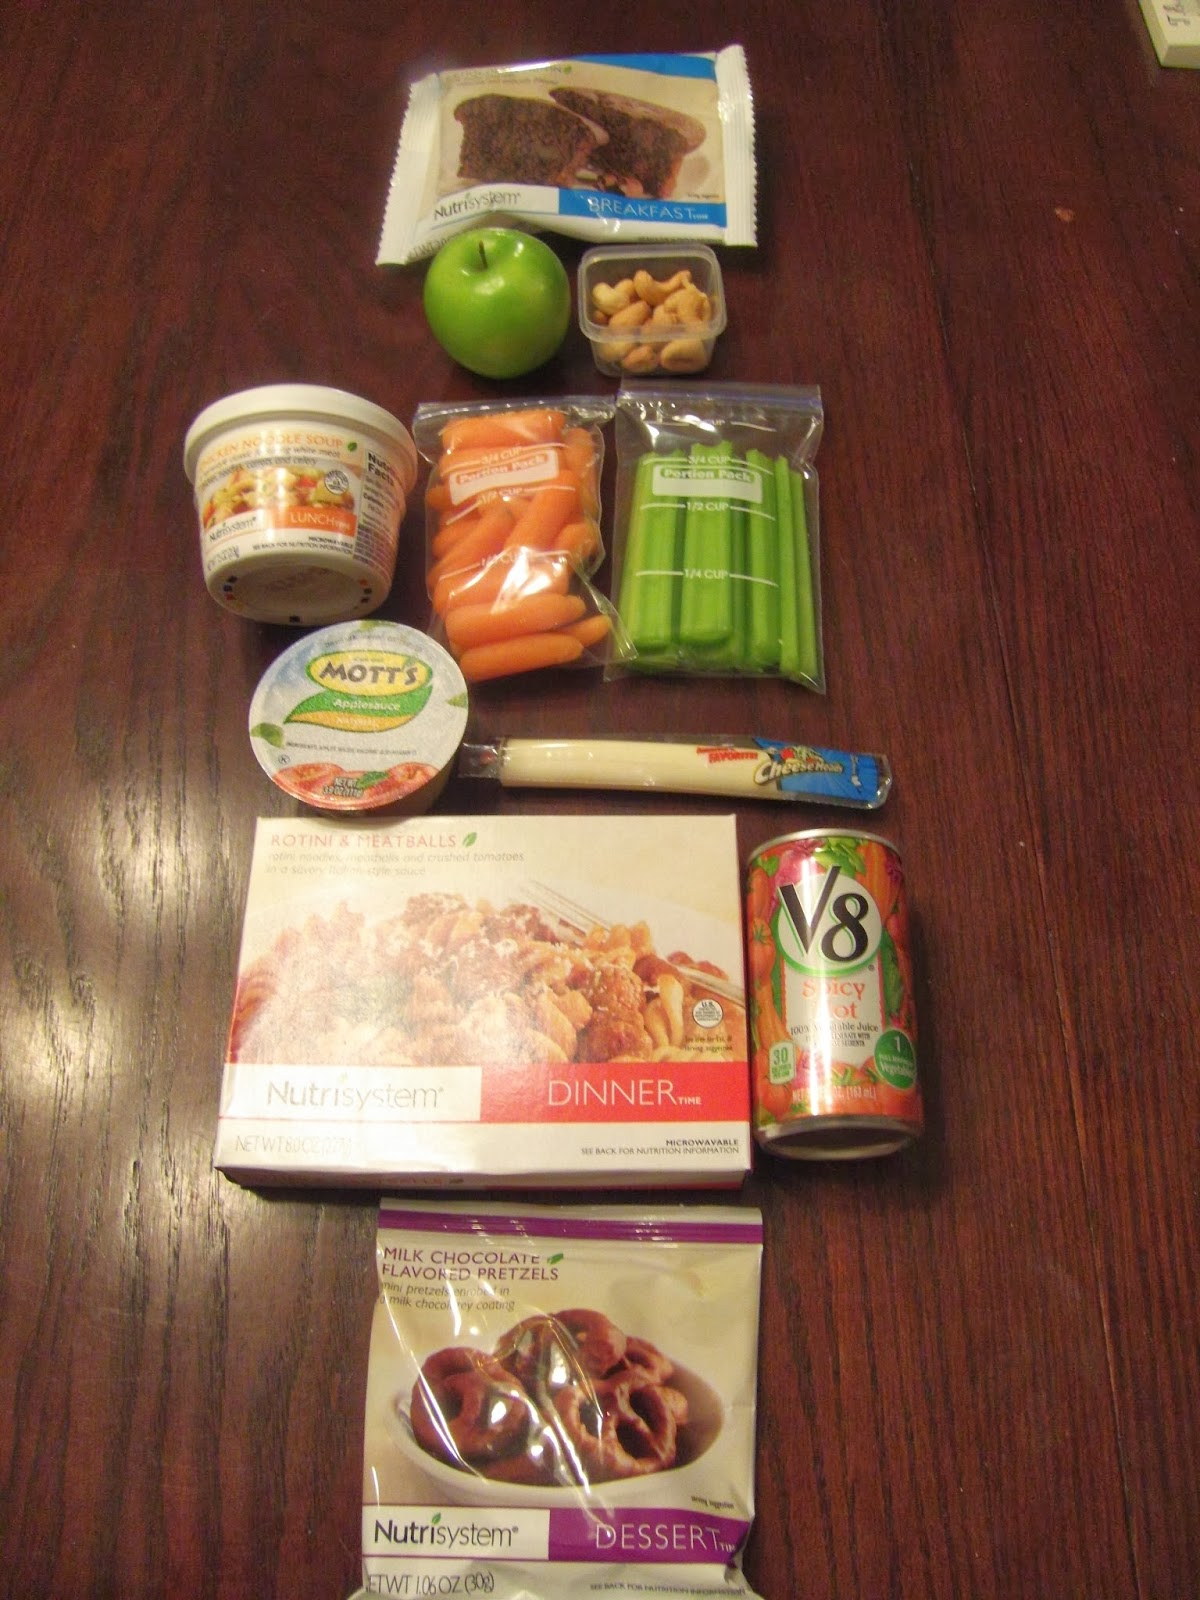 Lose weight in 7 simple steps nutrisystem types of food making healthy food choice will benefit your type 2 diabetes as well as help steer clear of the other healthnutrisystem for diabetes type 1 diabetes solutioingenieria Image collections